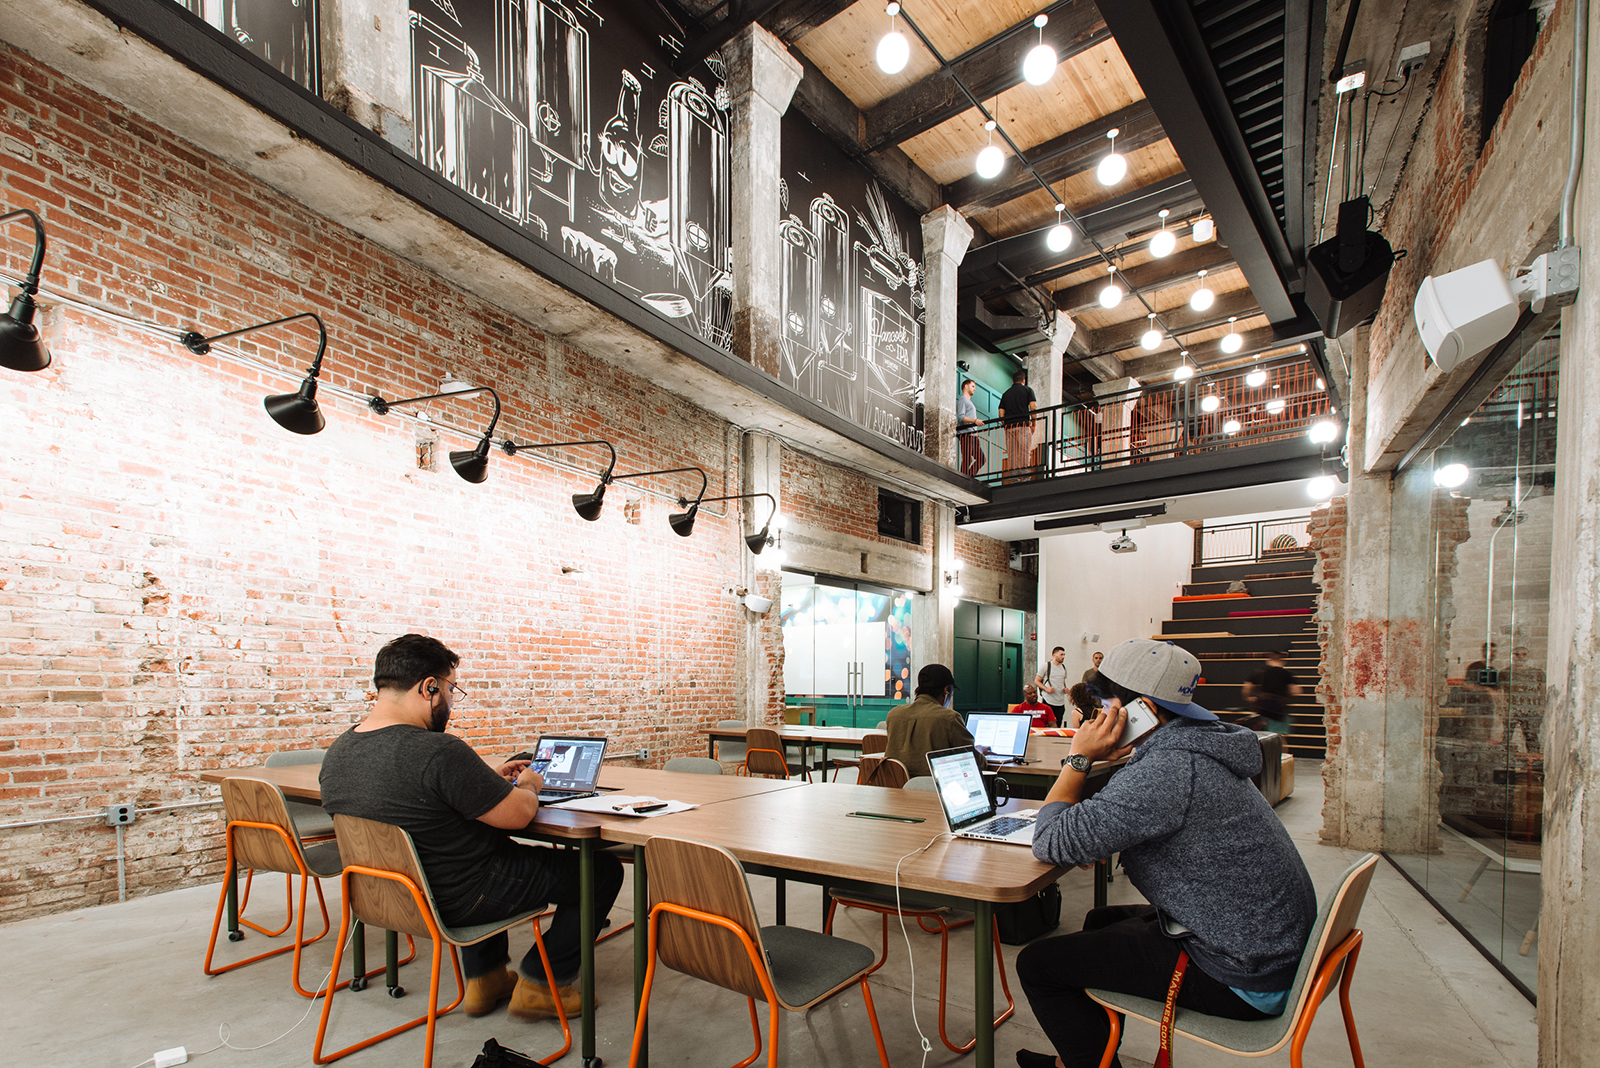 A Tour of WeWorks New Coworking Space in Philadelphia